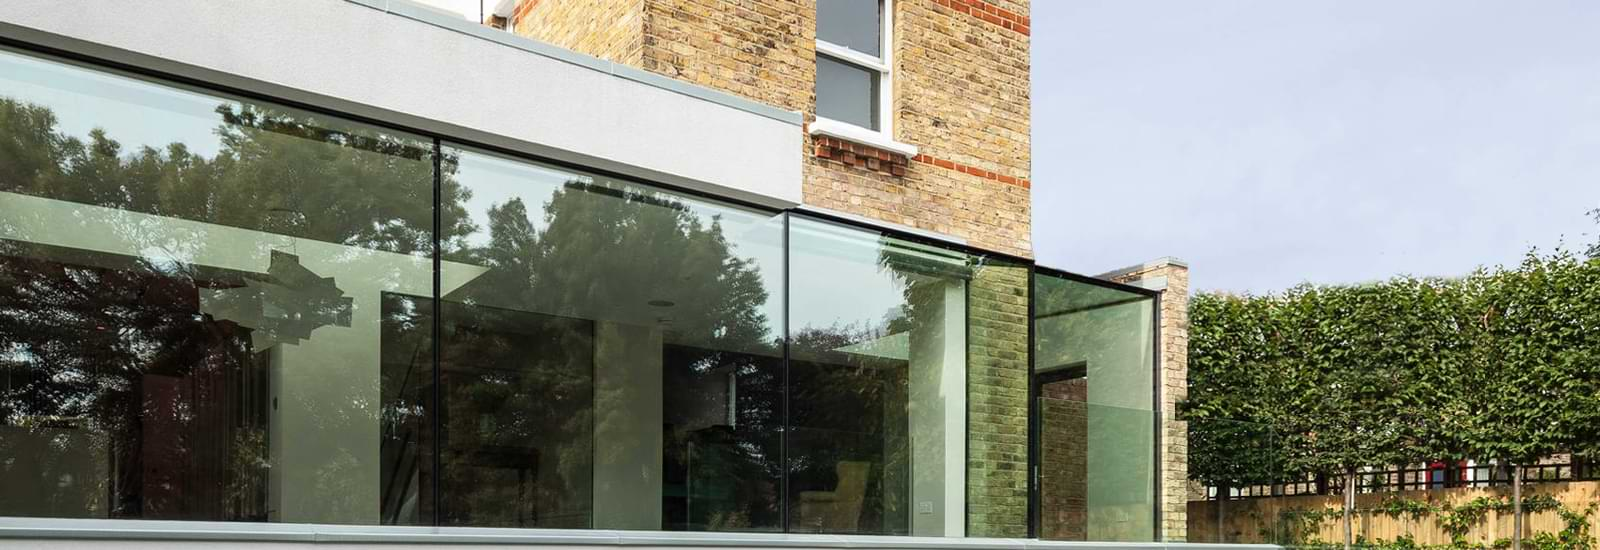 London Extension Architects